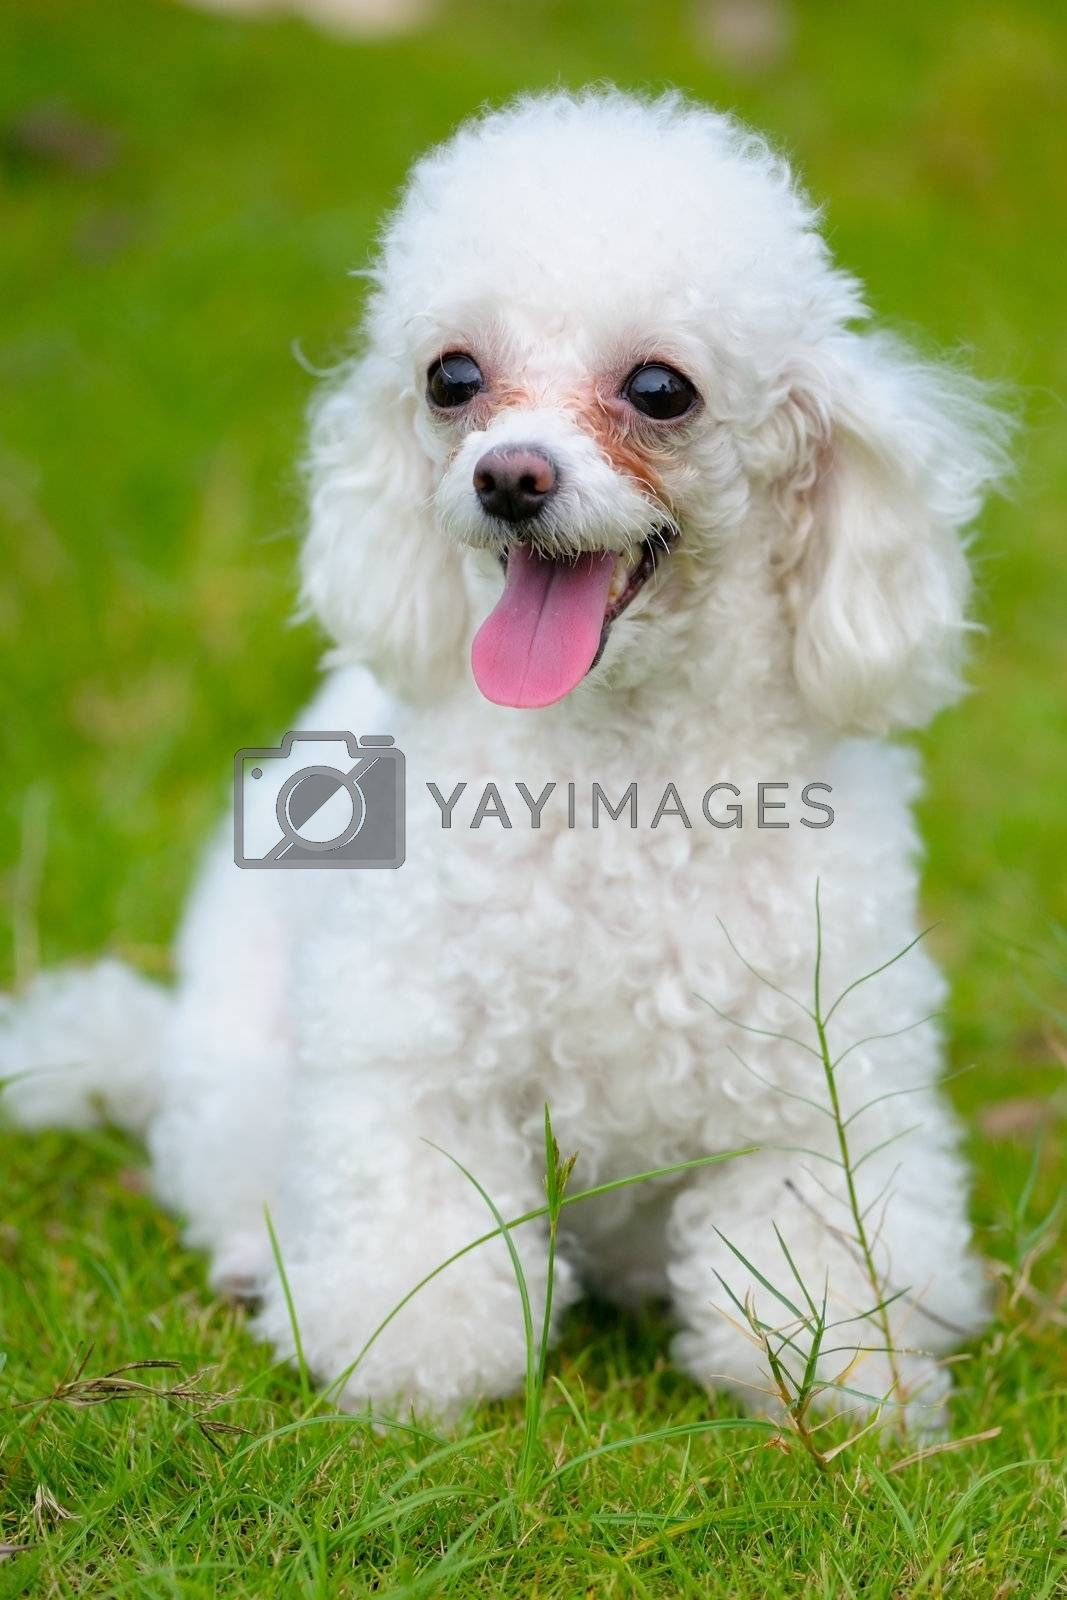 A little toy poodle dog standing on the lawn